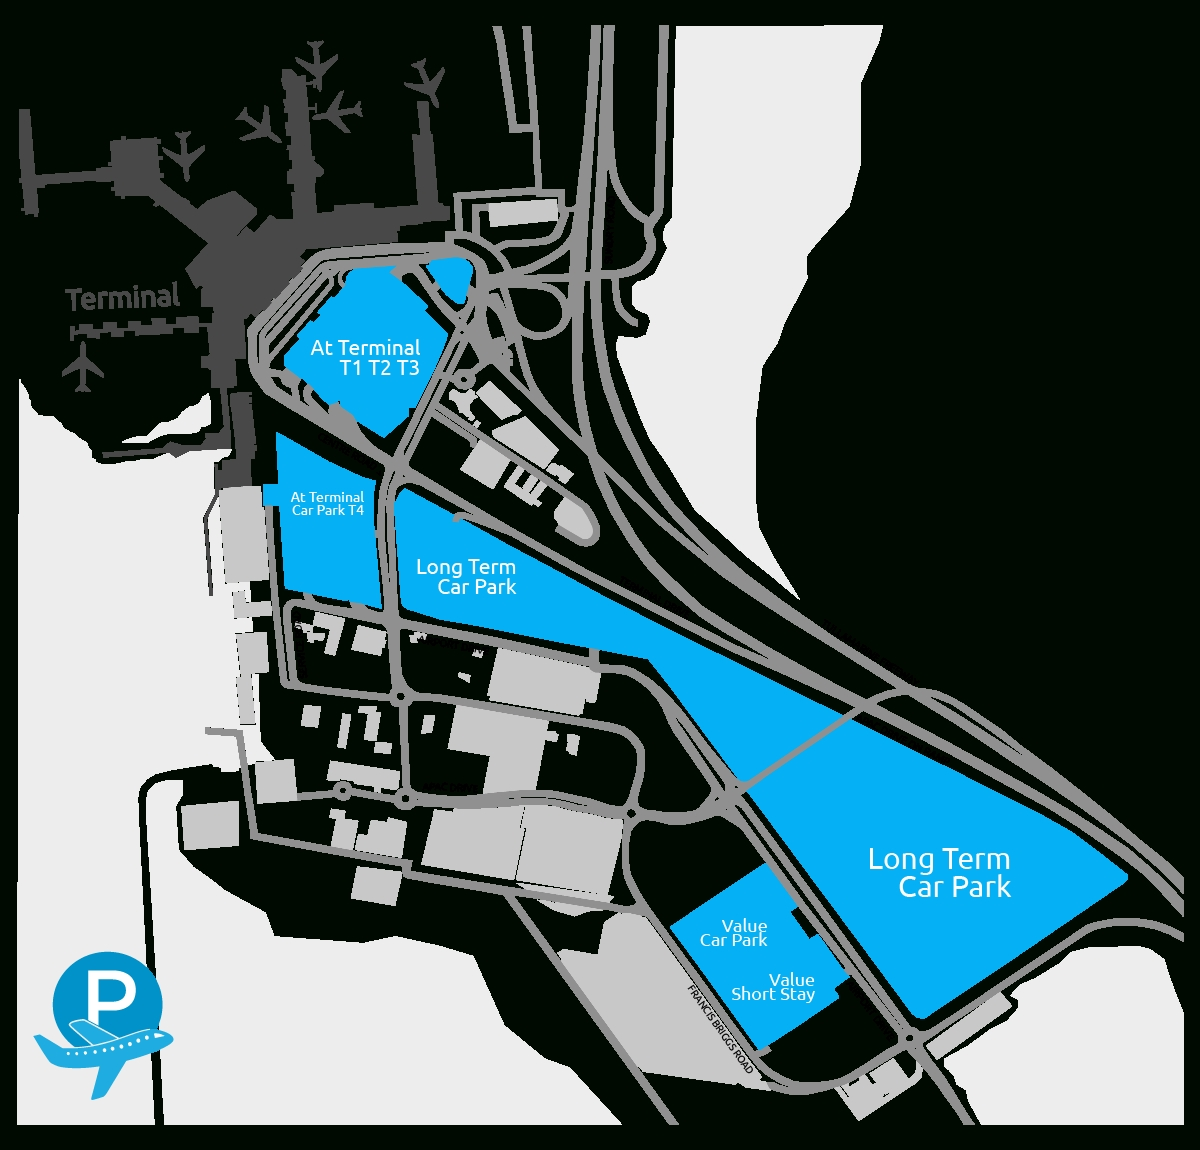 Melbourne Airport Parking Map   Flyparks intended for Melbourne Florida Airport Terminal Map